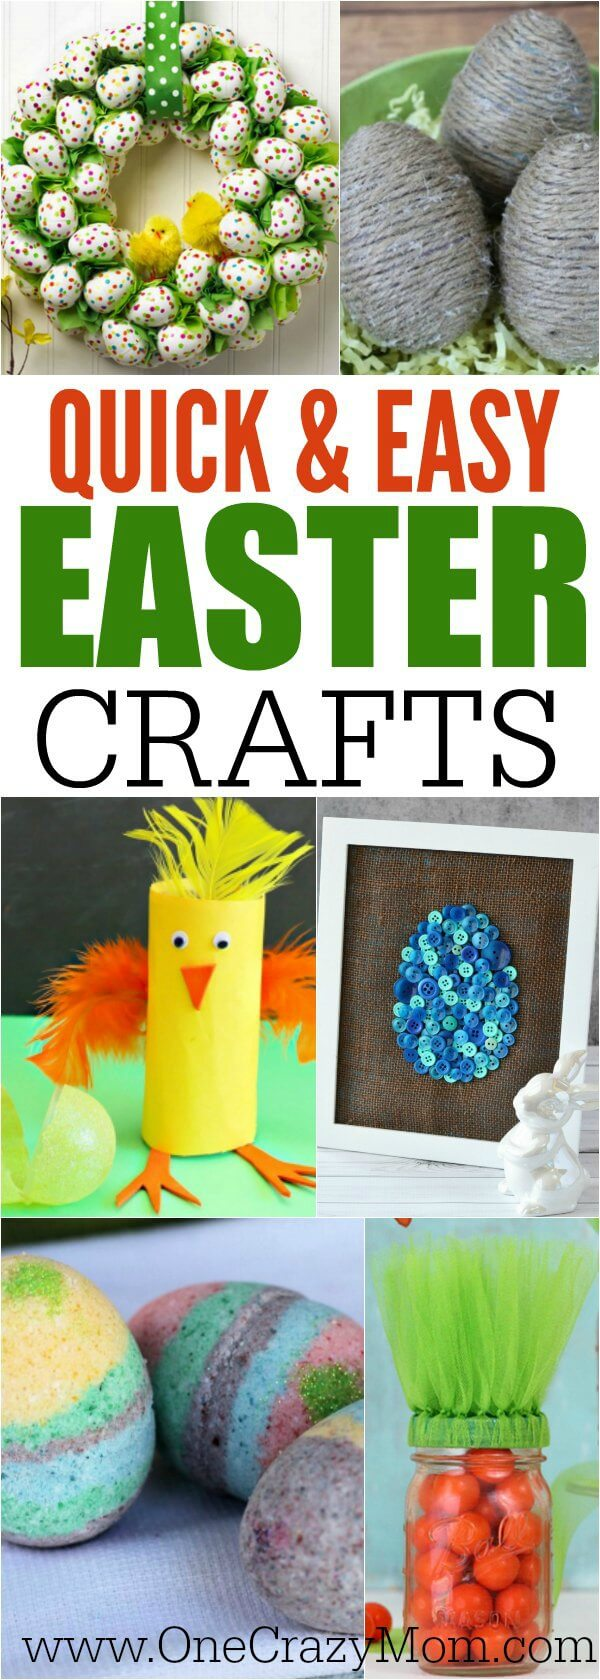 Try these quick and easy Easter crafts for kids and adults! You can easily make these Easter crafts in just minutes without spending a lot of money.Over 20 ideas that are perfect to make for Easter.